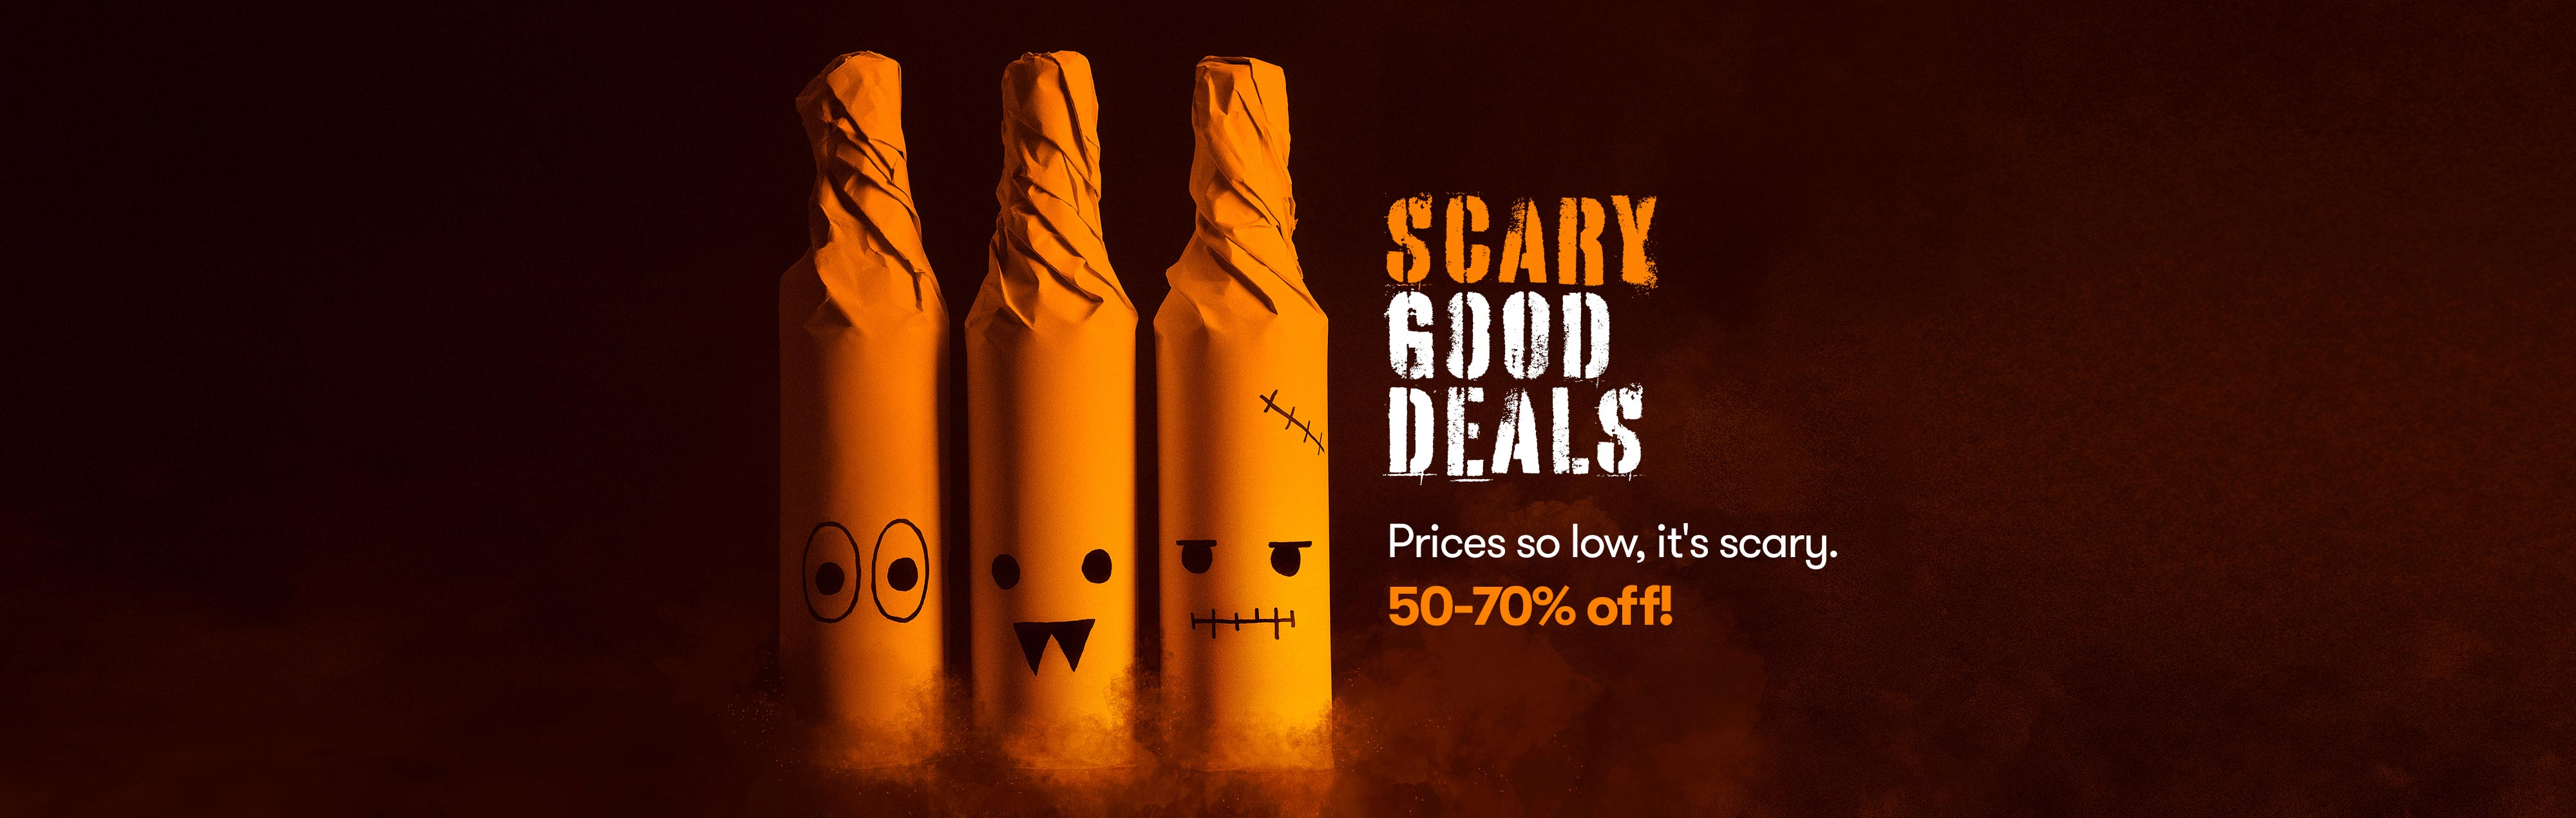 VINOMOFO Scary Good Deals